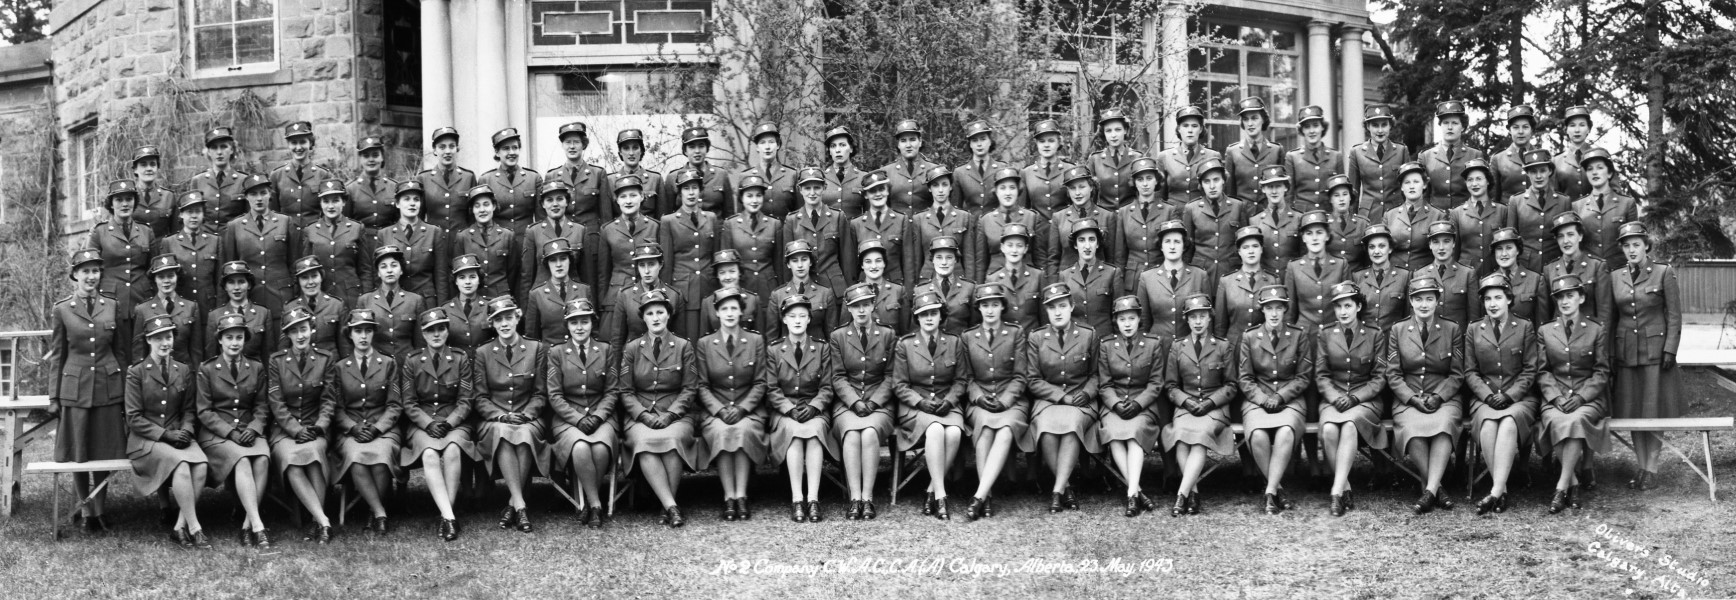 Number 2 company, Canadian Women's Army Corps, Calgary, Alberta | Photo by W.J. Oliver | May 23, 1943 | Glenbow Archives NA-4940-2